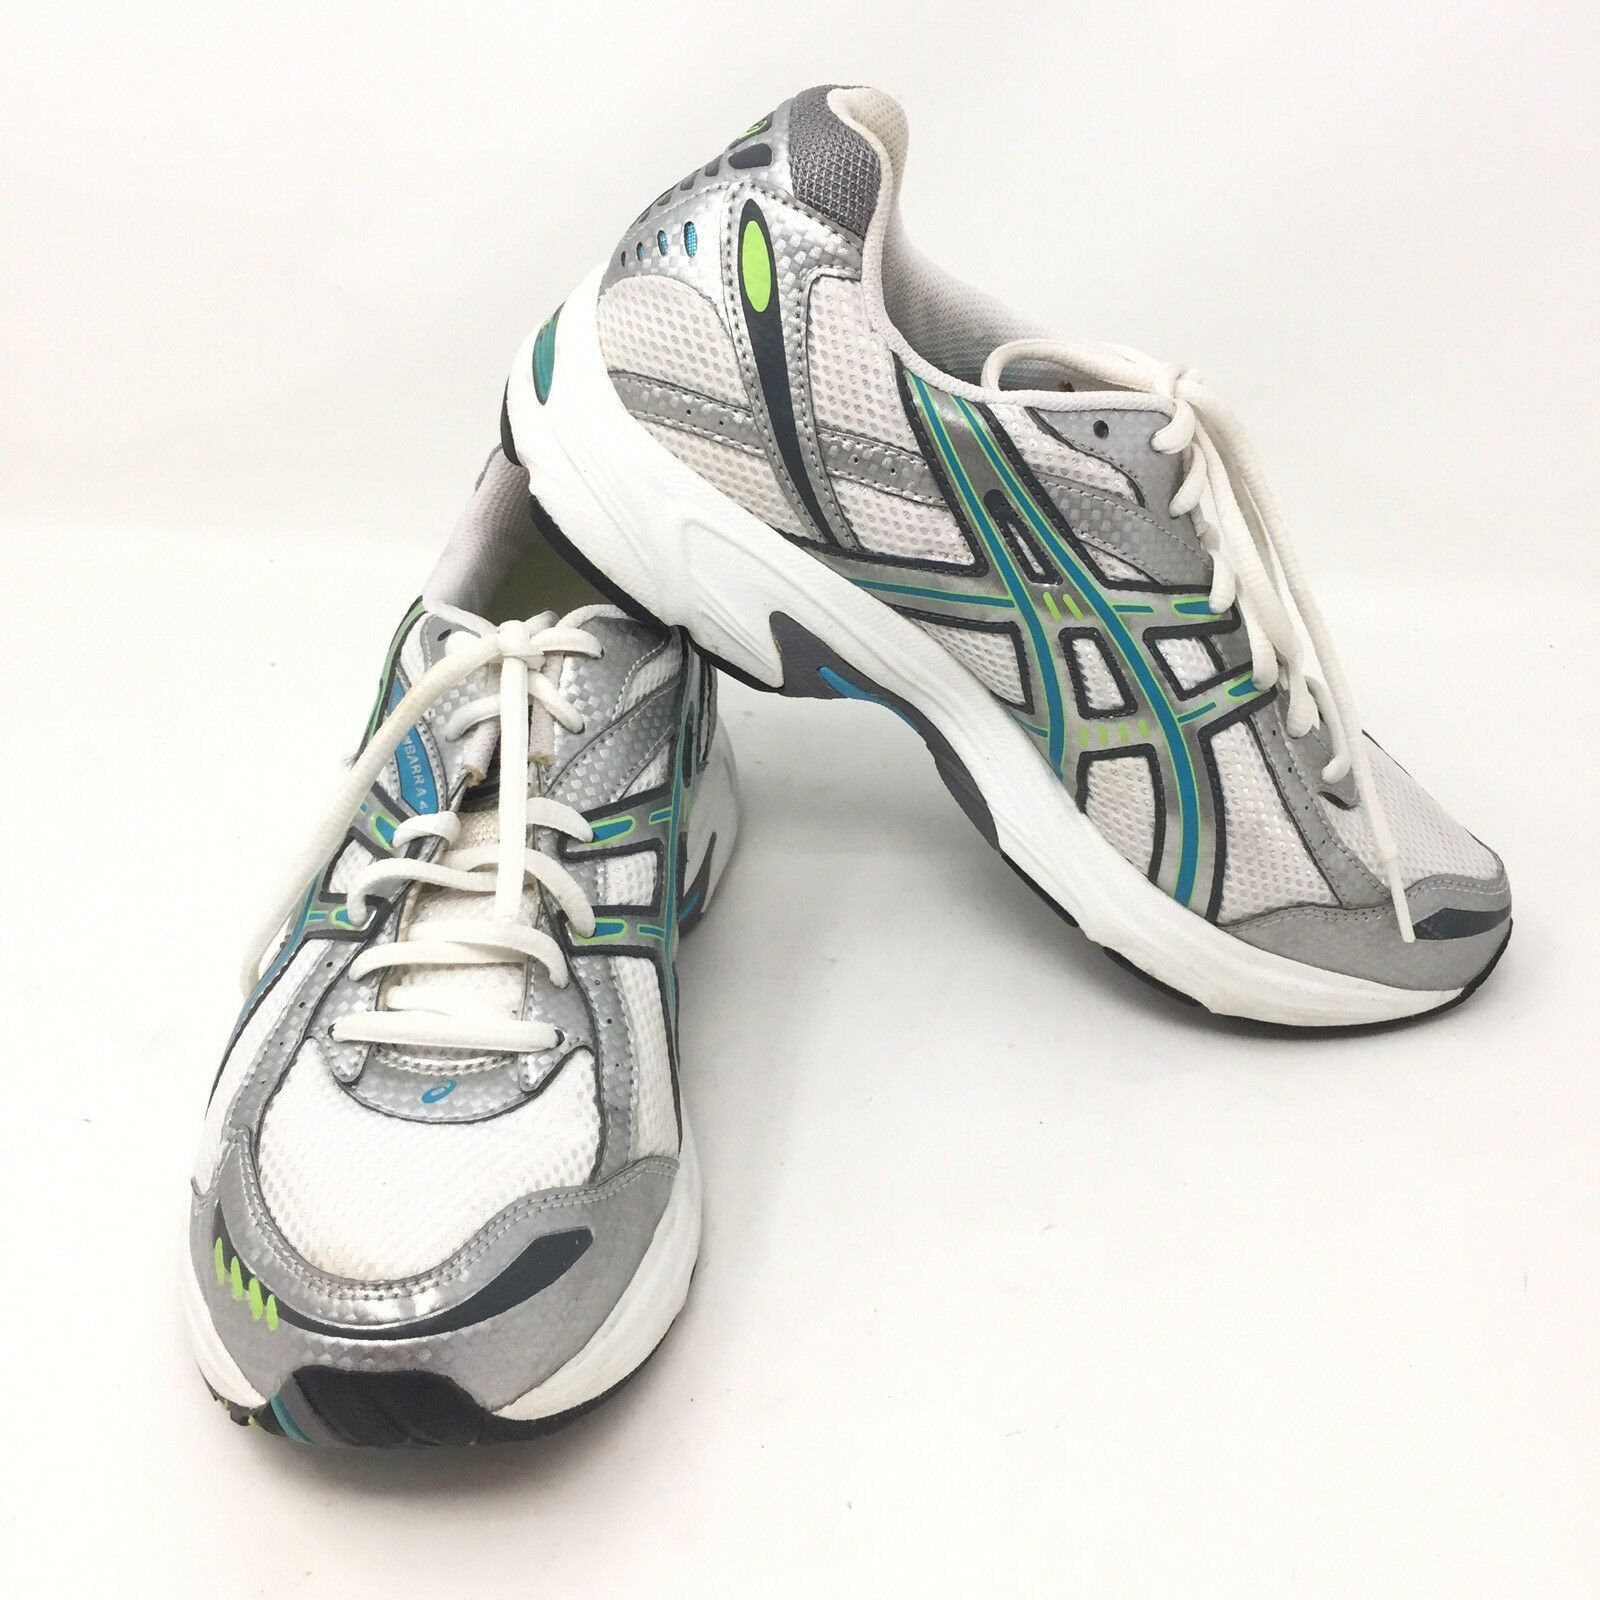 Asics Gel Kanbarra 4 Women's T975N White bluee Green Athletic shoes Size 8.5 P3A